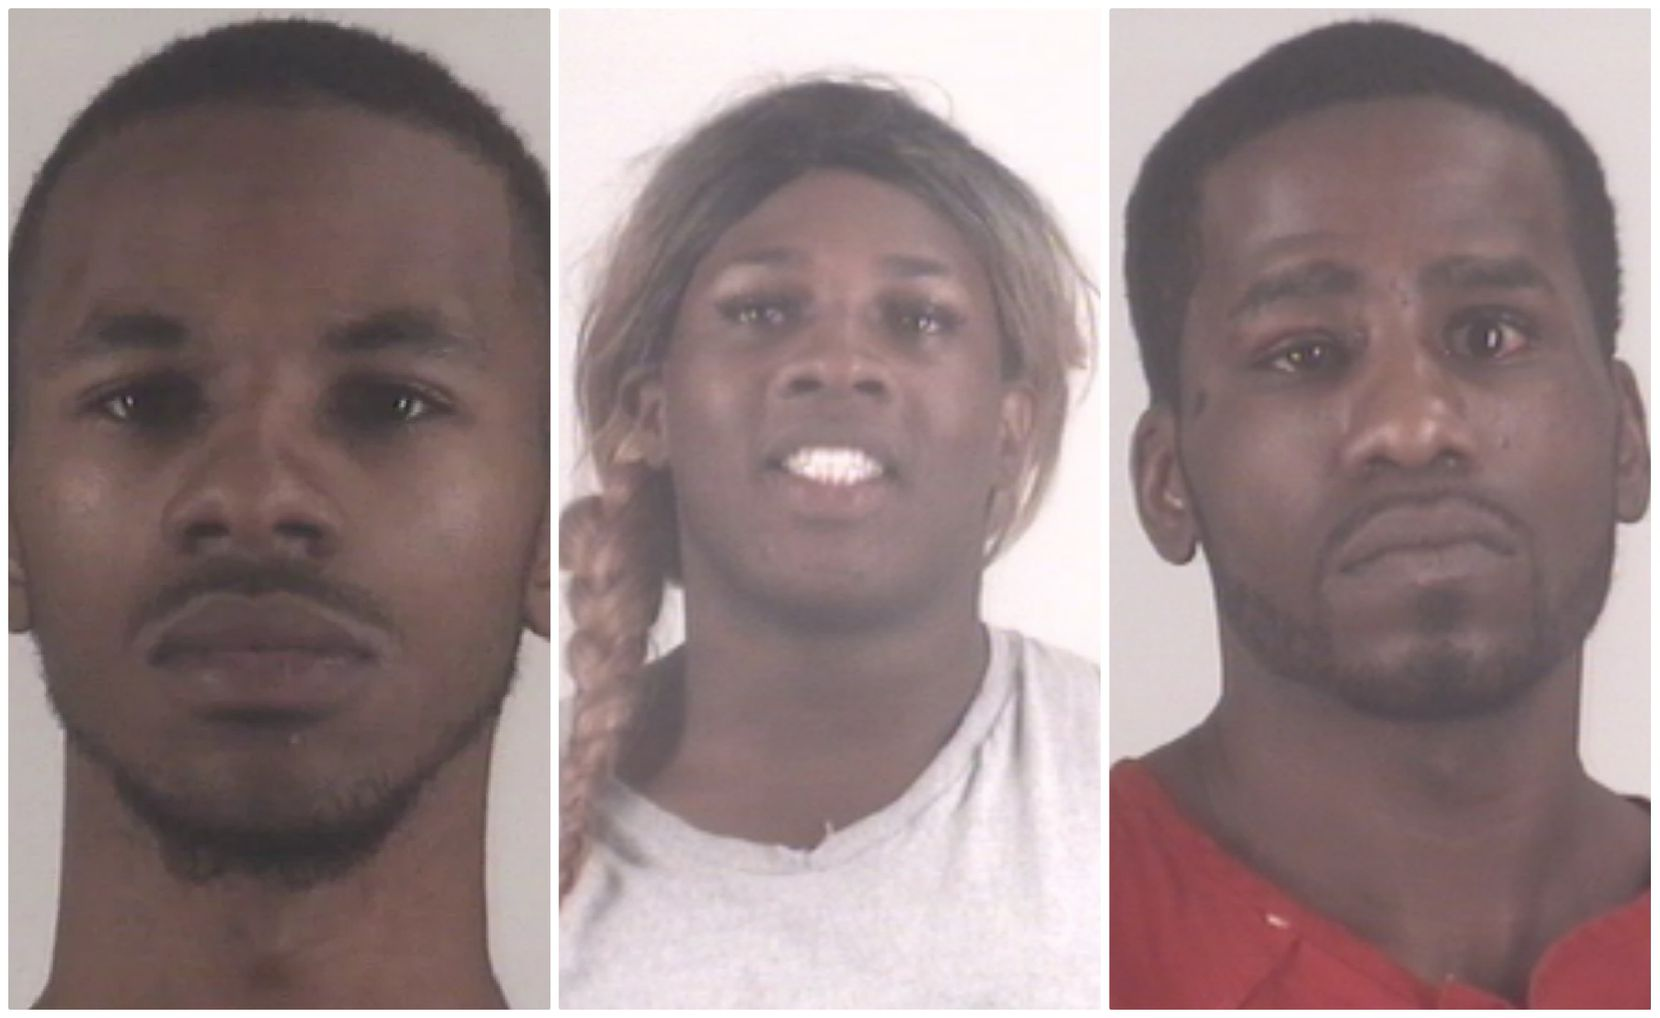 Fort Worth police say Dacion Steptoe (left) opened fire on police and was killed when they returned fire. Timothy Huff (center) and Samuel Mayfield were taken into custody and booked into the Tarrant County Jail.